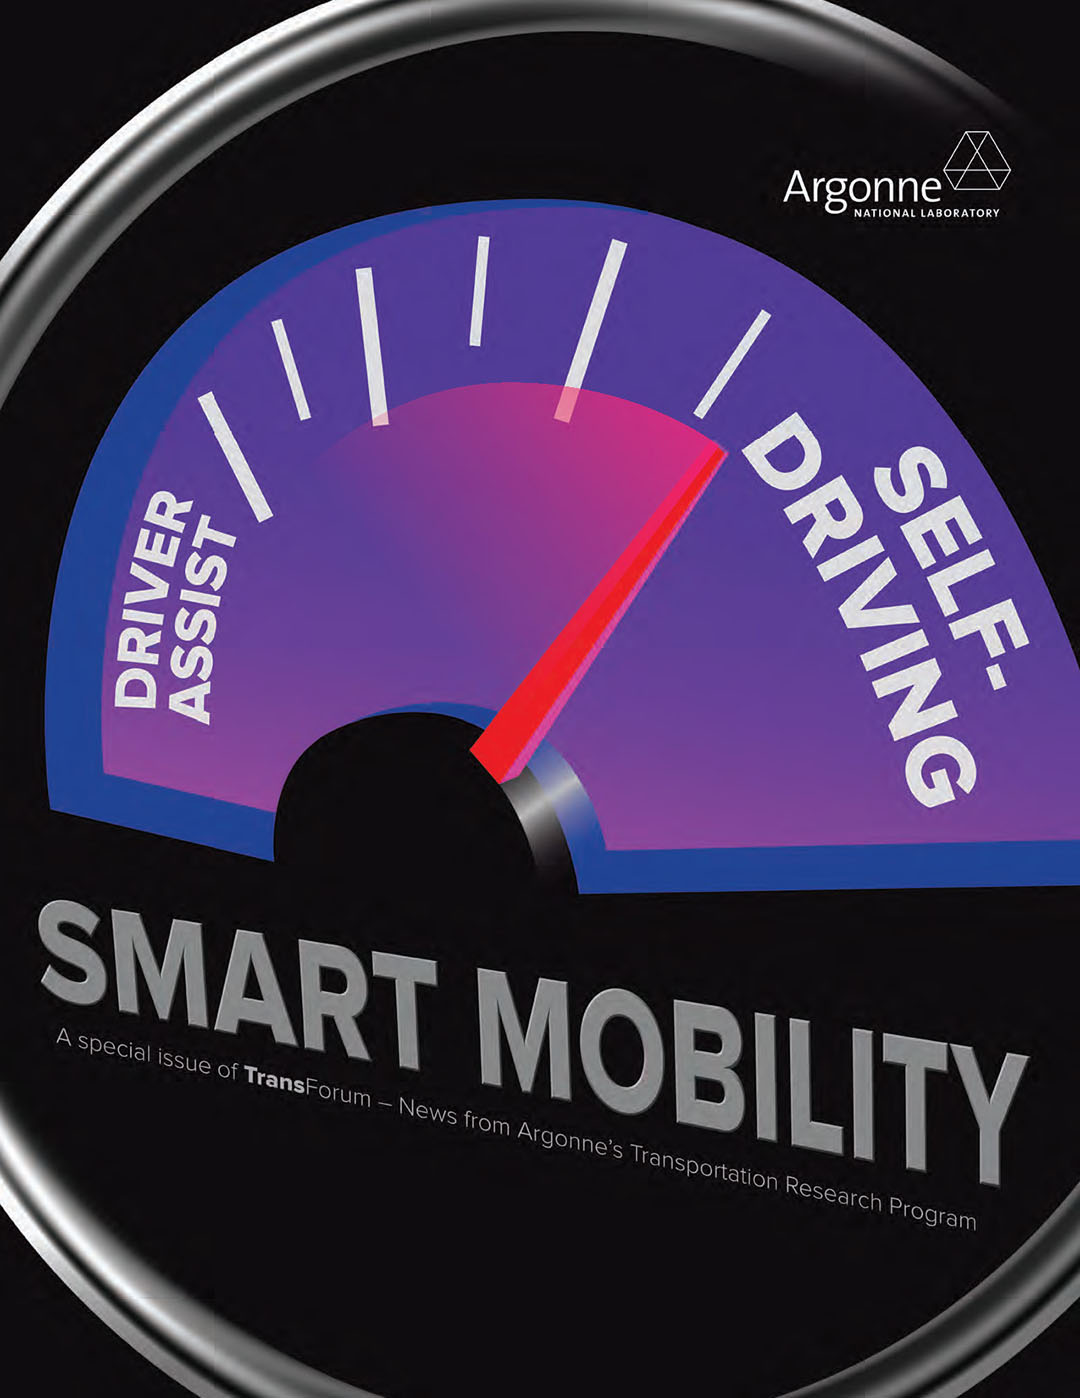 TransForum Special Issue on Smart Mobility – Fall 2015